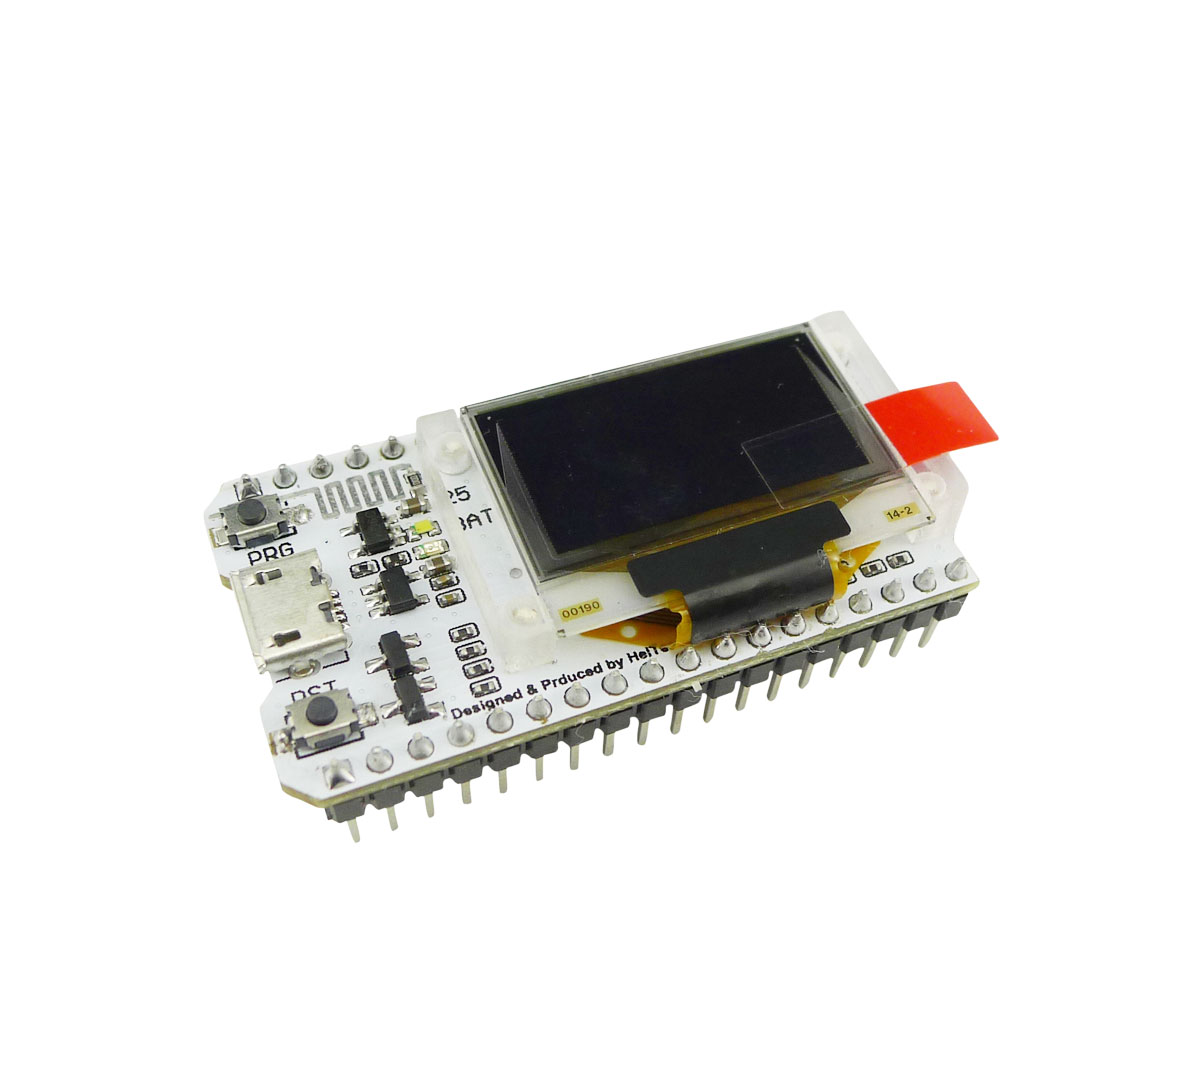 Aihasd 0.96 OLED Display ESP32 With Antenna WIFI Bluetooth Lora Development Board Transceiver SX1278 433MHZ IOT For Arduino